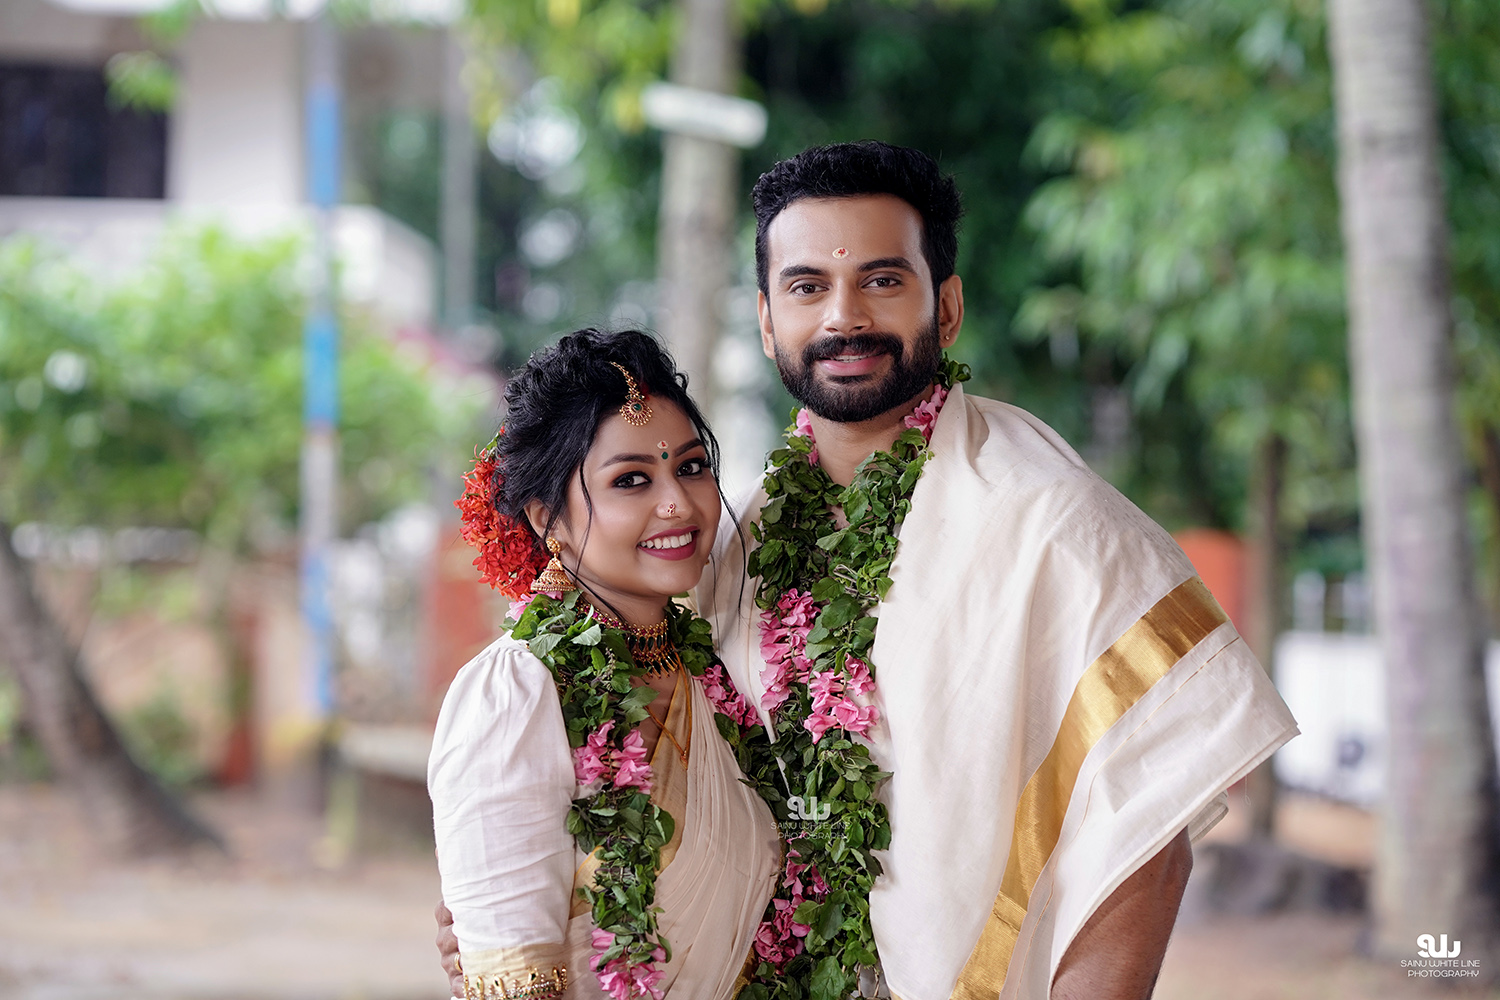 Actor Hemanth Menon,Actor Hemanth Menon marriage stills,Actor Hemanth Menon wedding stills,Actor Hemanth Menon marriage photos,Hemanth Menon wedding images